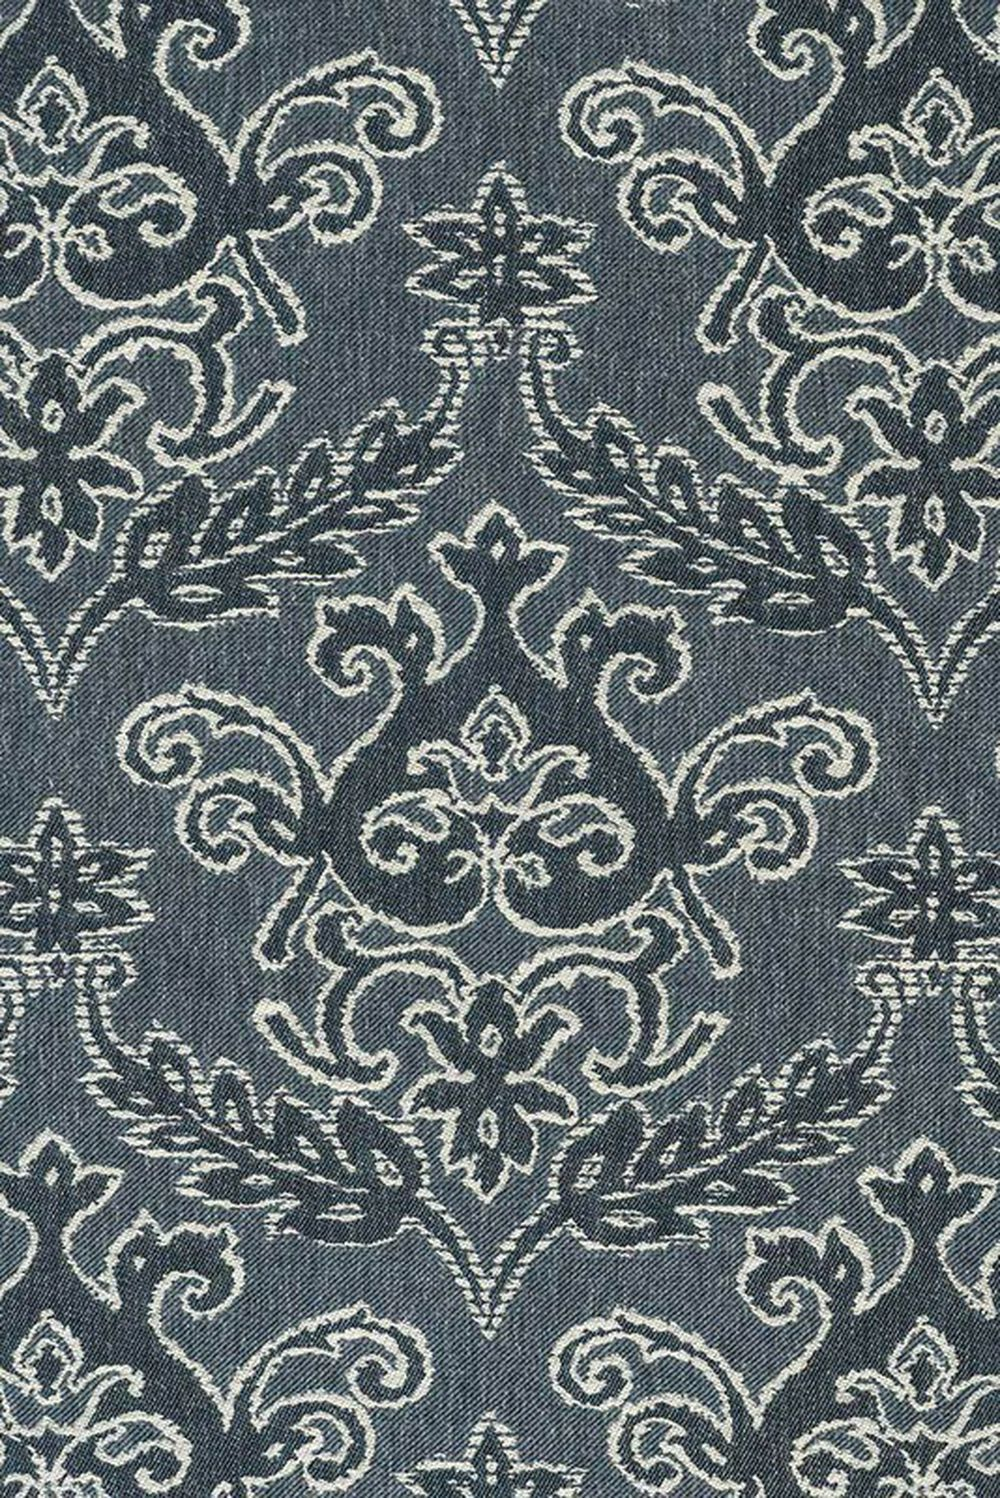 Photo of the fabric Notting Hill Fountain swatch by James Dunlop. Use for Curtains, Accessory. Style of Damask, Decorative, Pattern